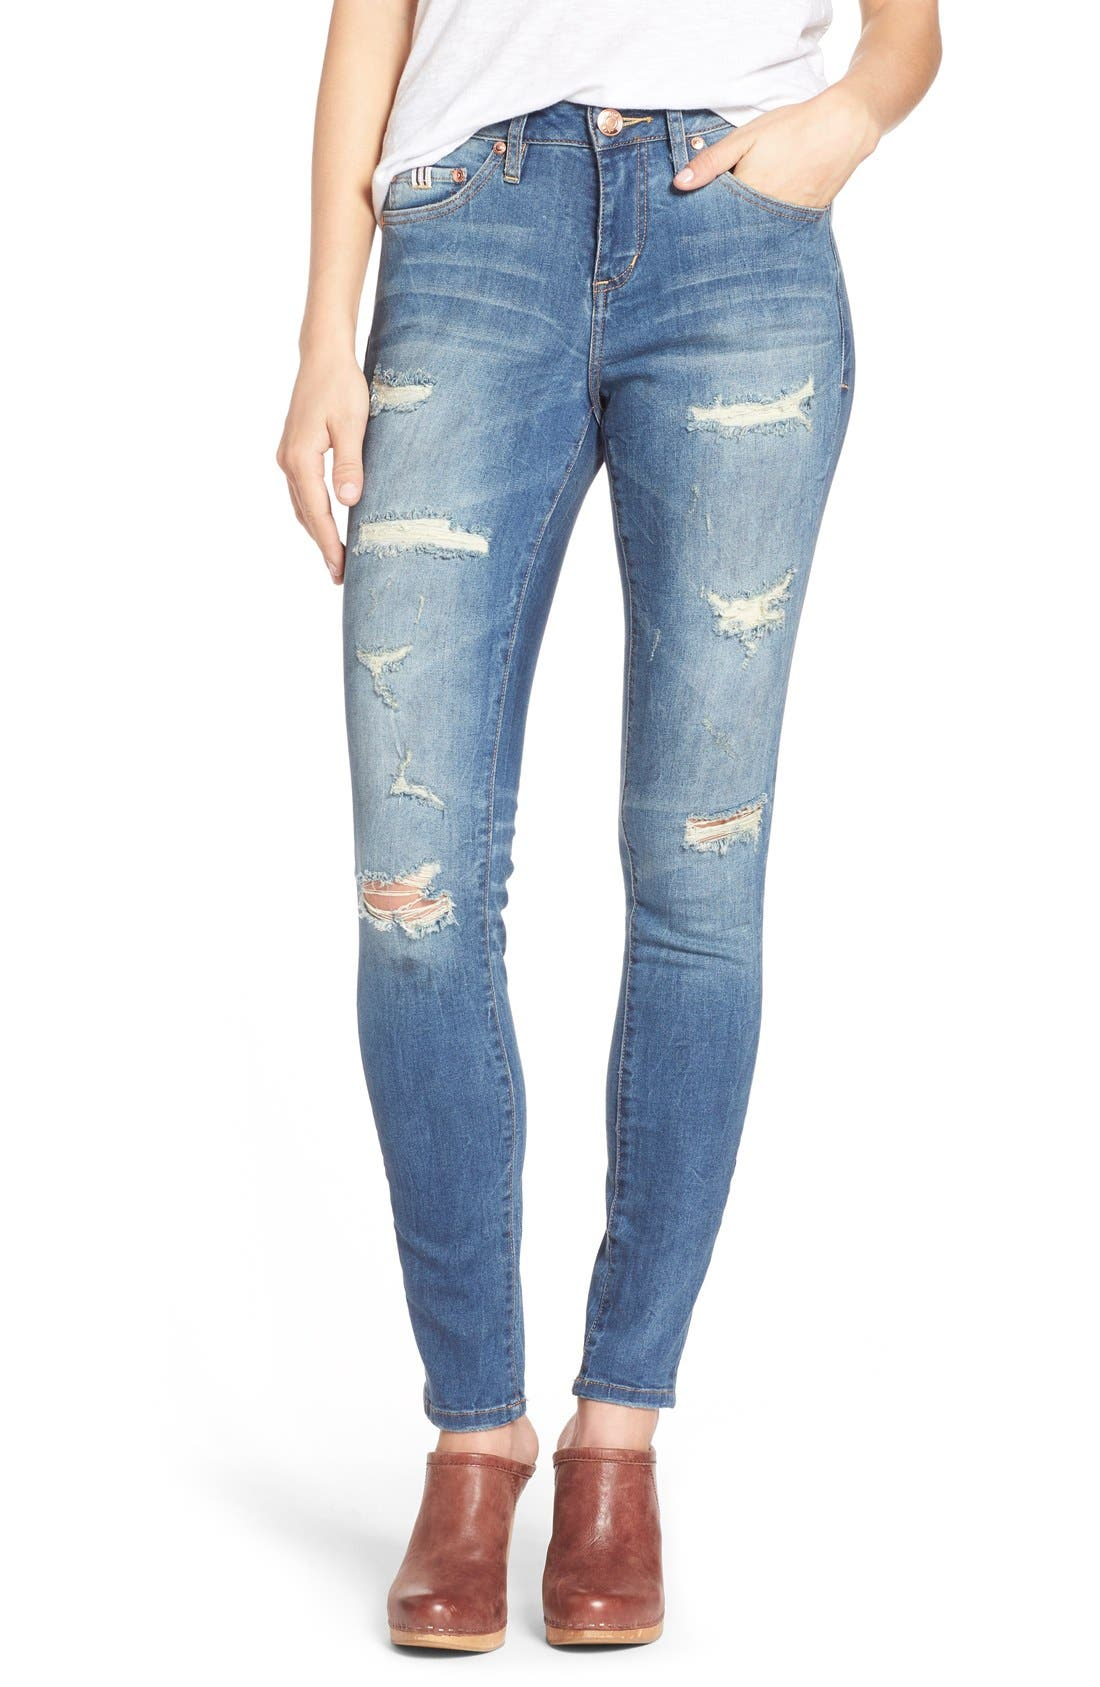 Jag Jeans Sheridan Distressed Skinny Jeans (Blue Carbon) (Regular & Petite)